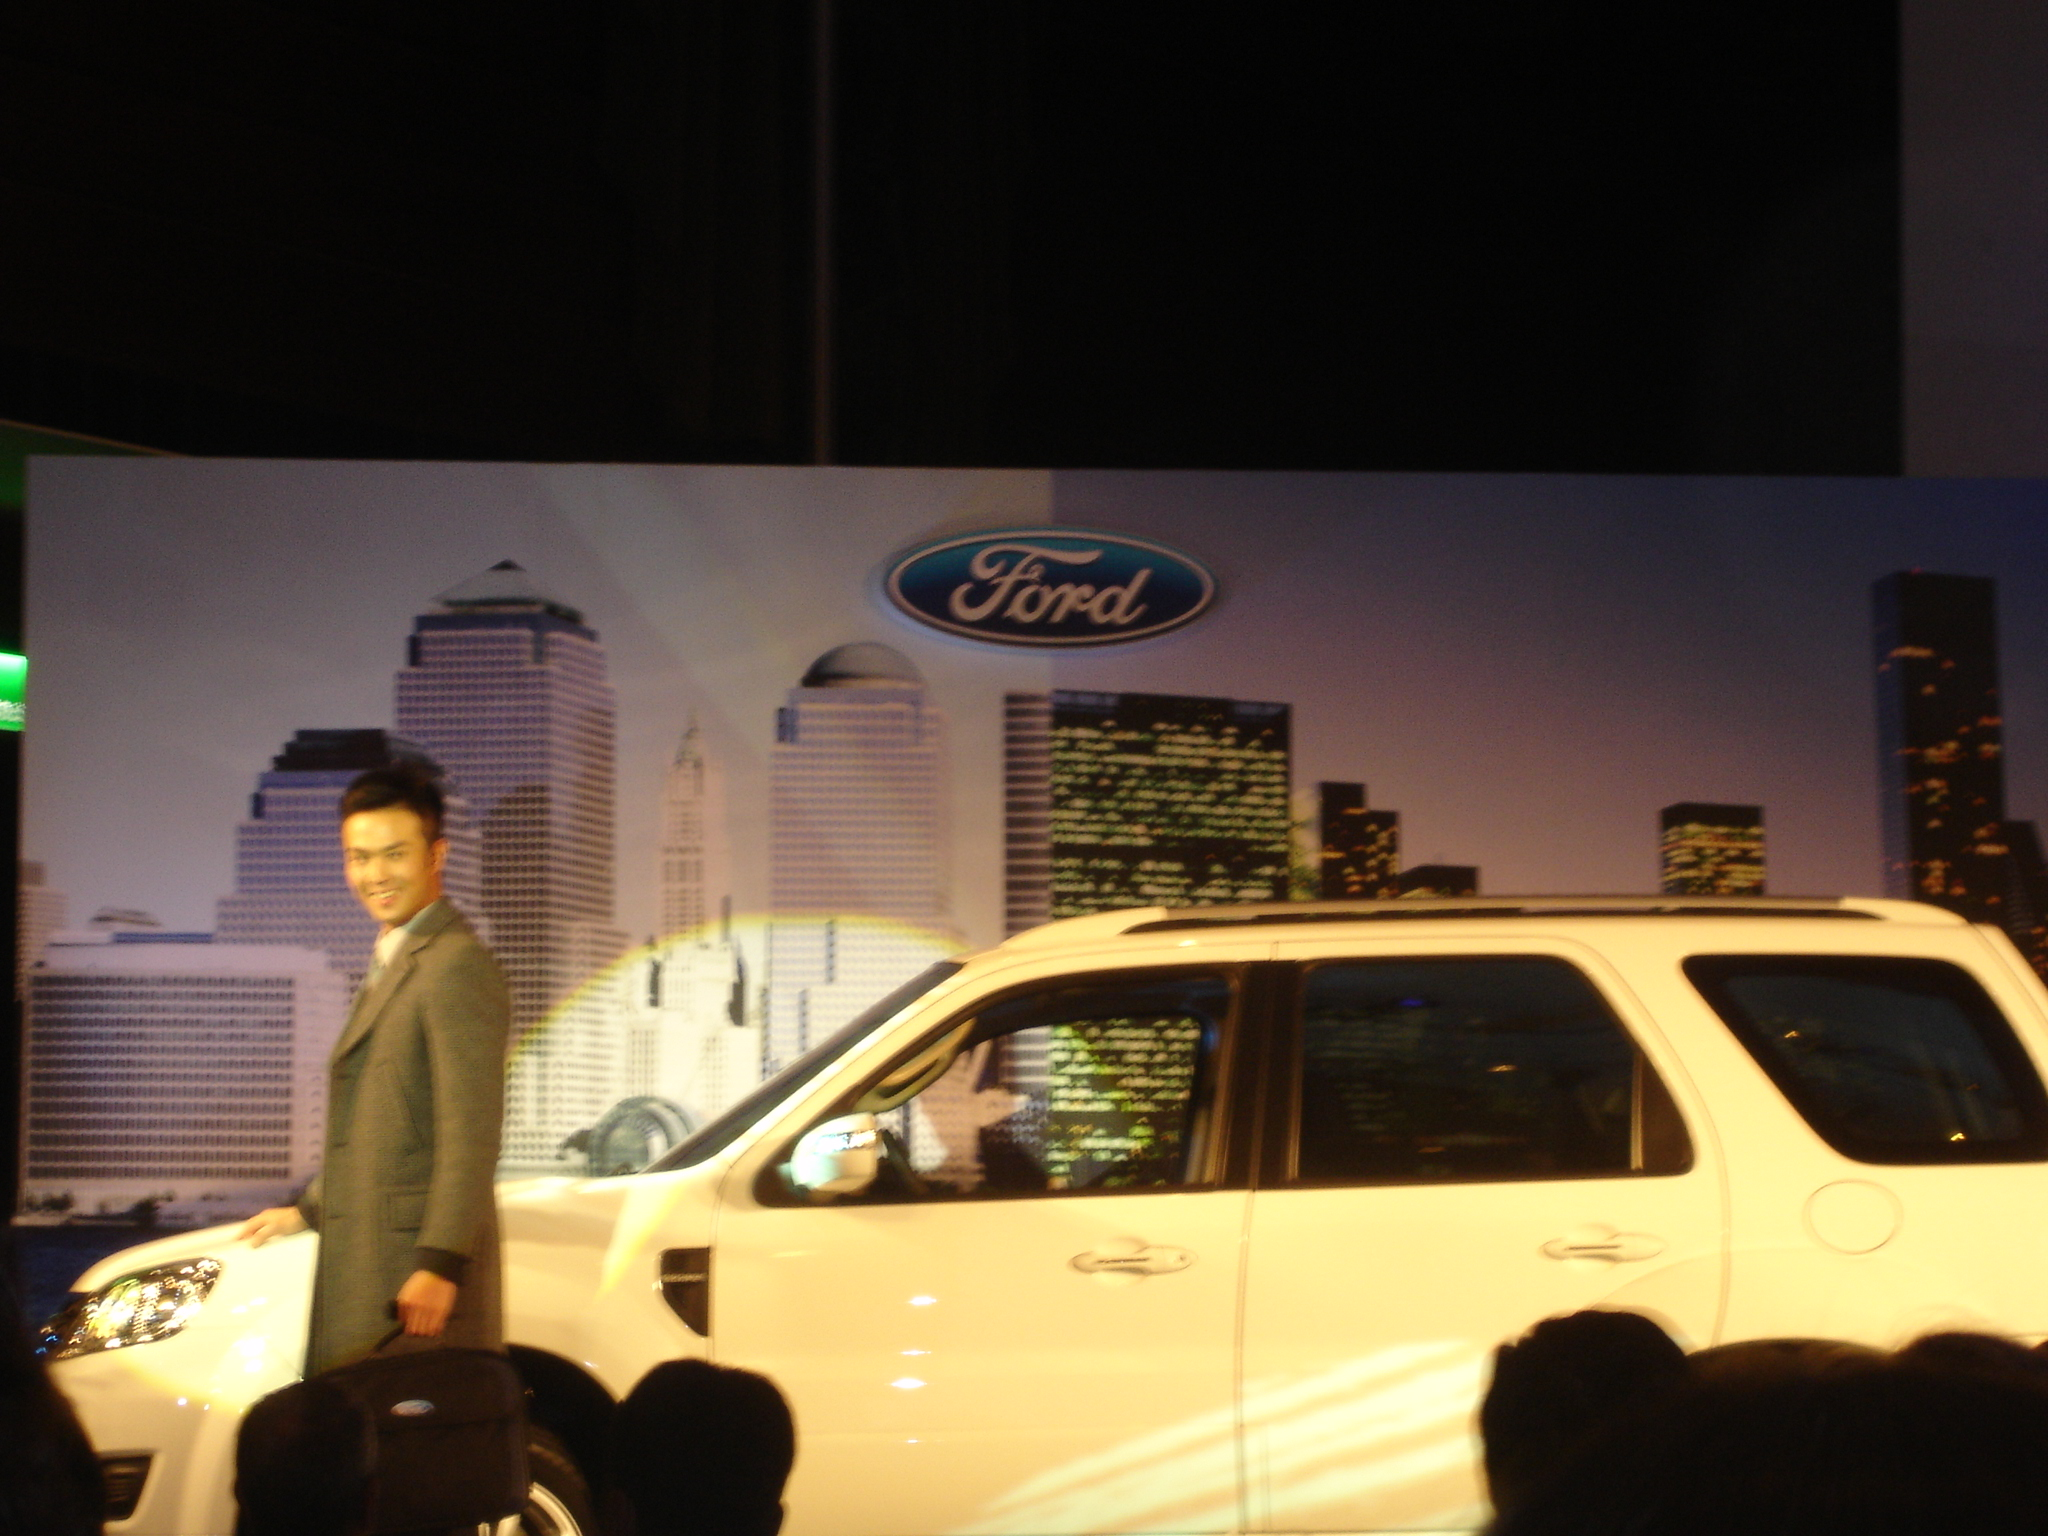 Ford Lio Ho Motor introduces the all-new Escape2 SUV